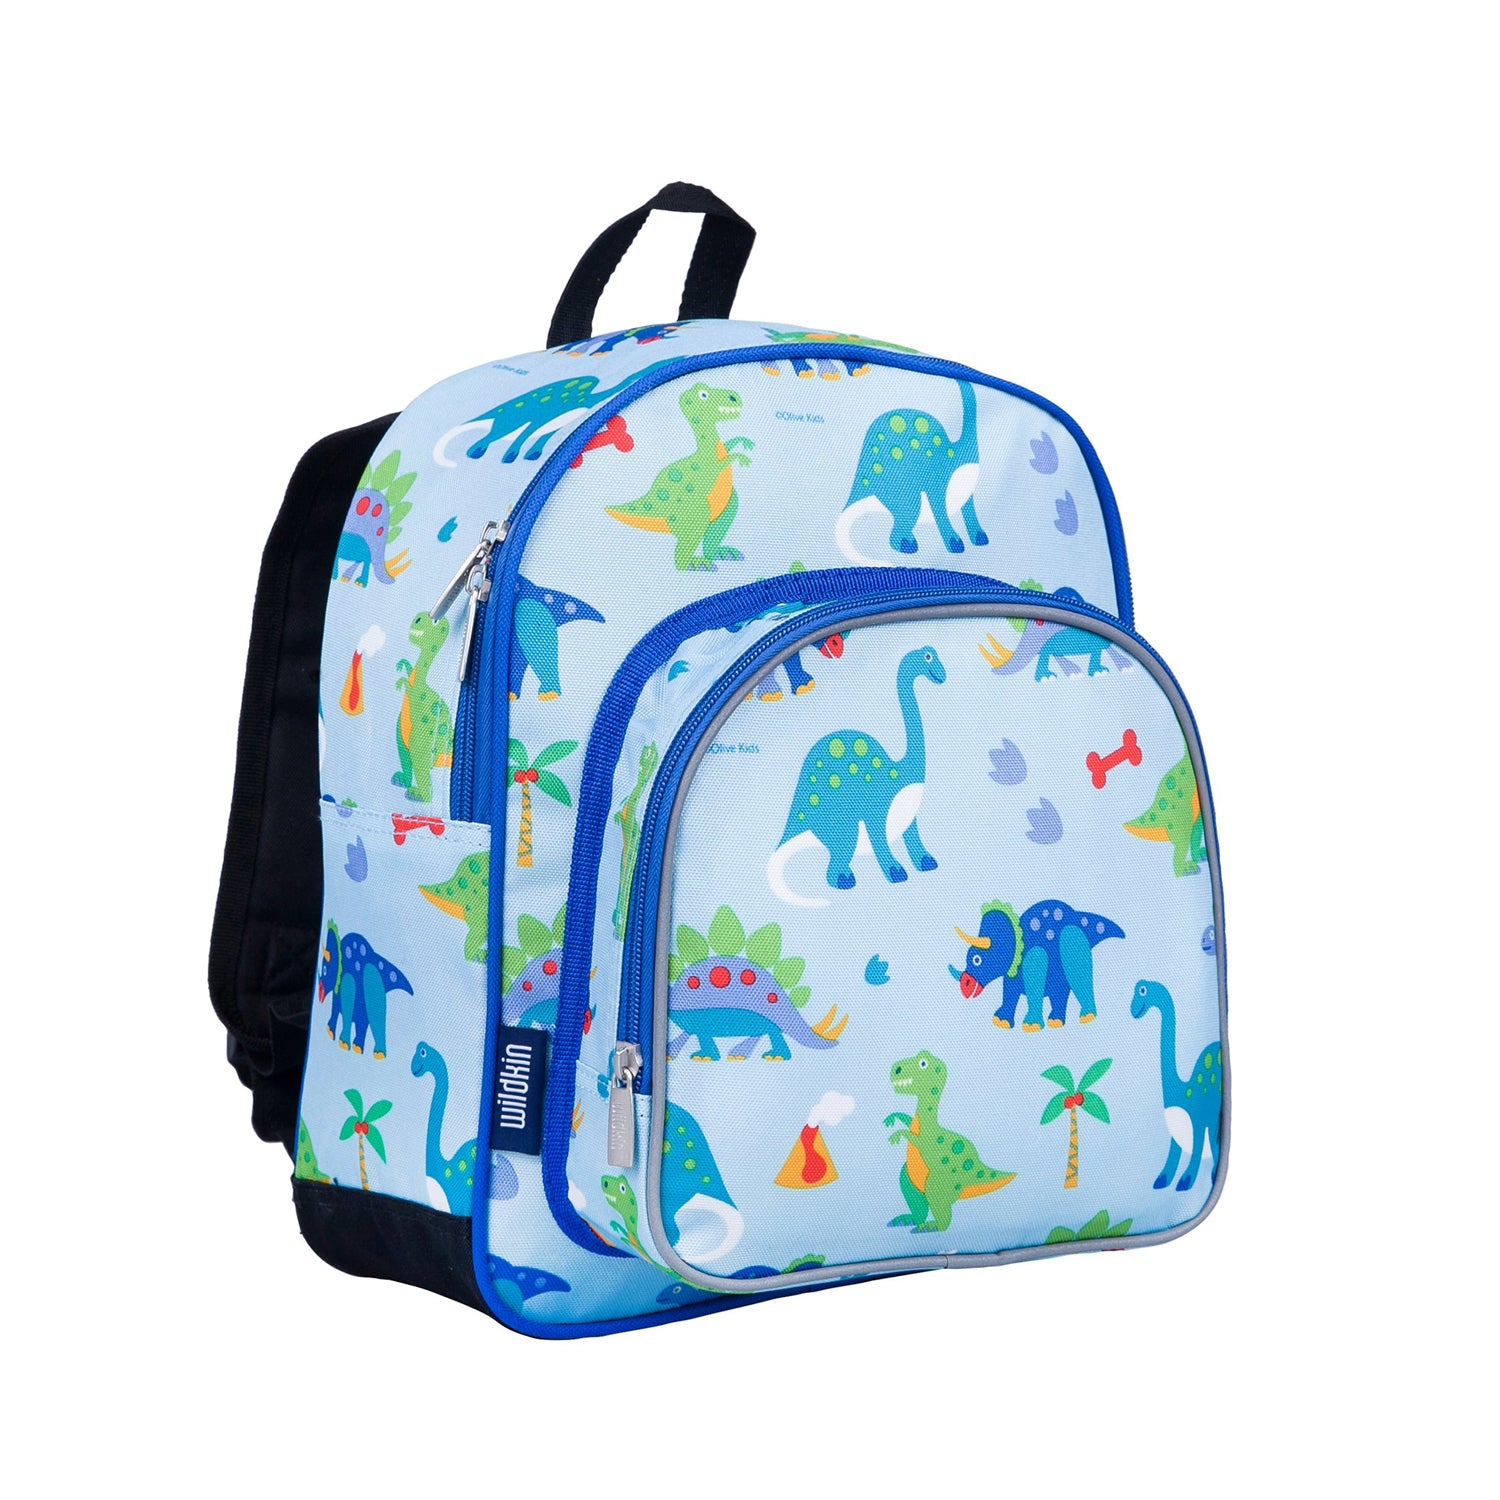 Dinosaur Land Toddler Backpack